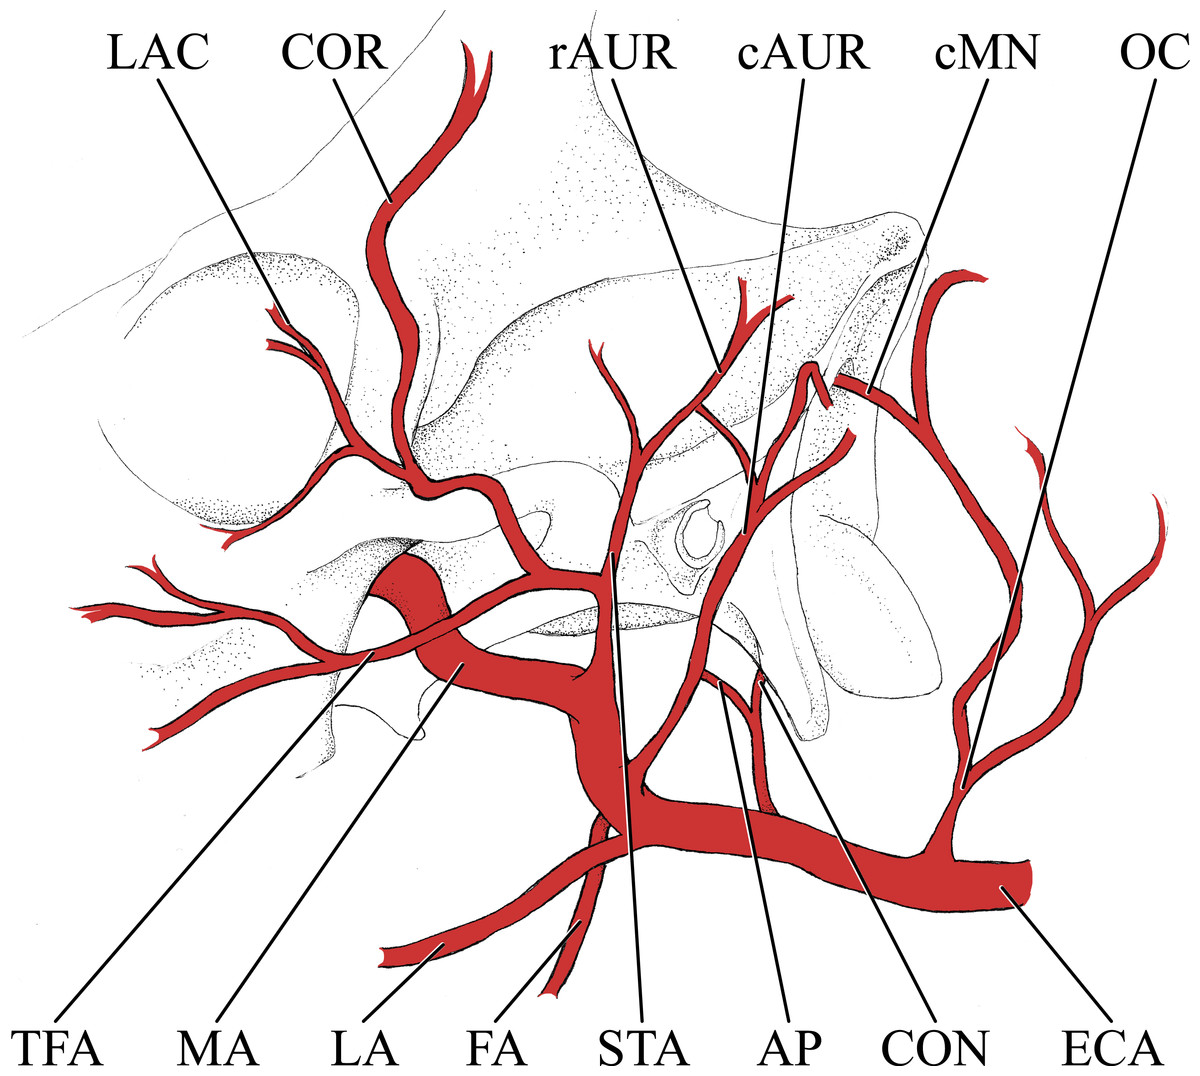 1200x1076 A Comparison Postnatal Arterial Patterns In A Growth Series